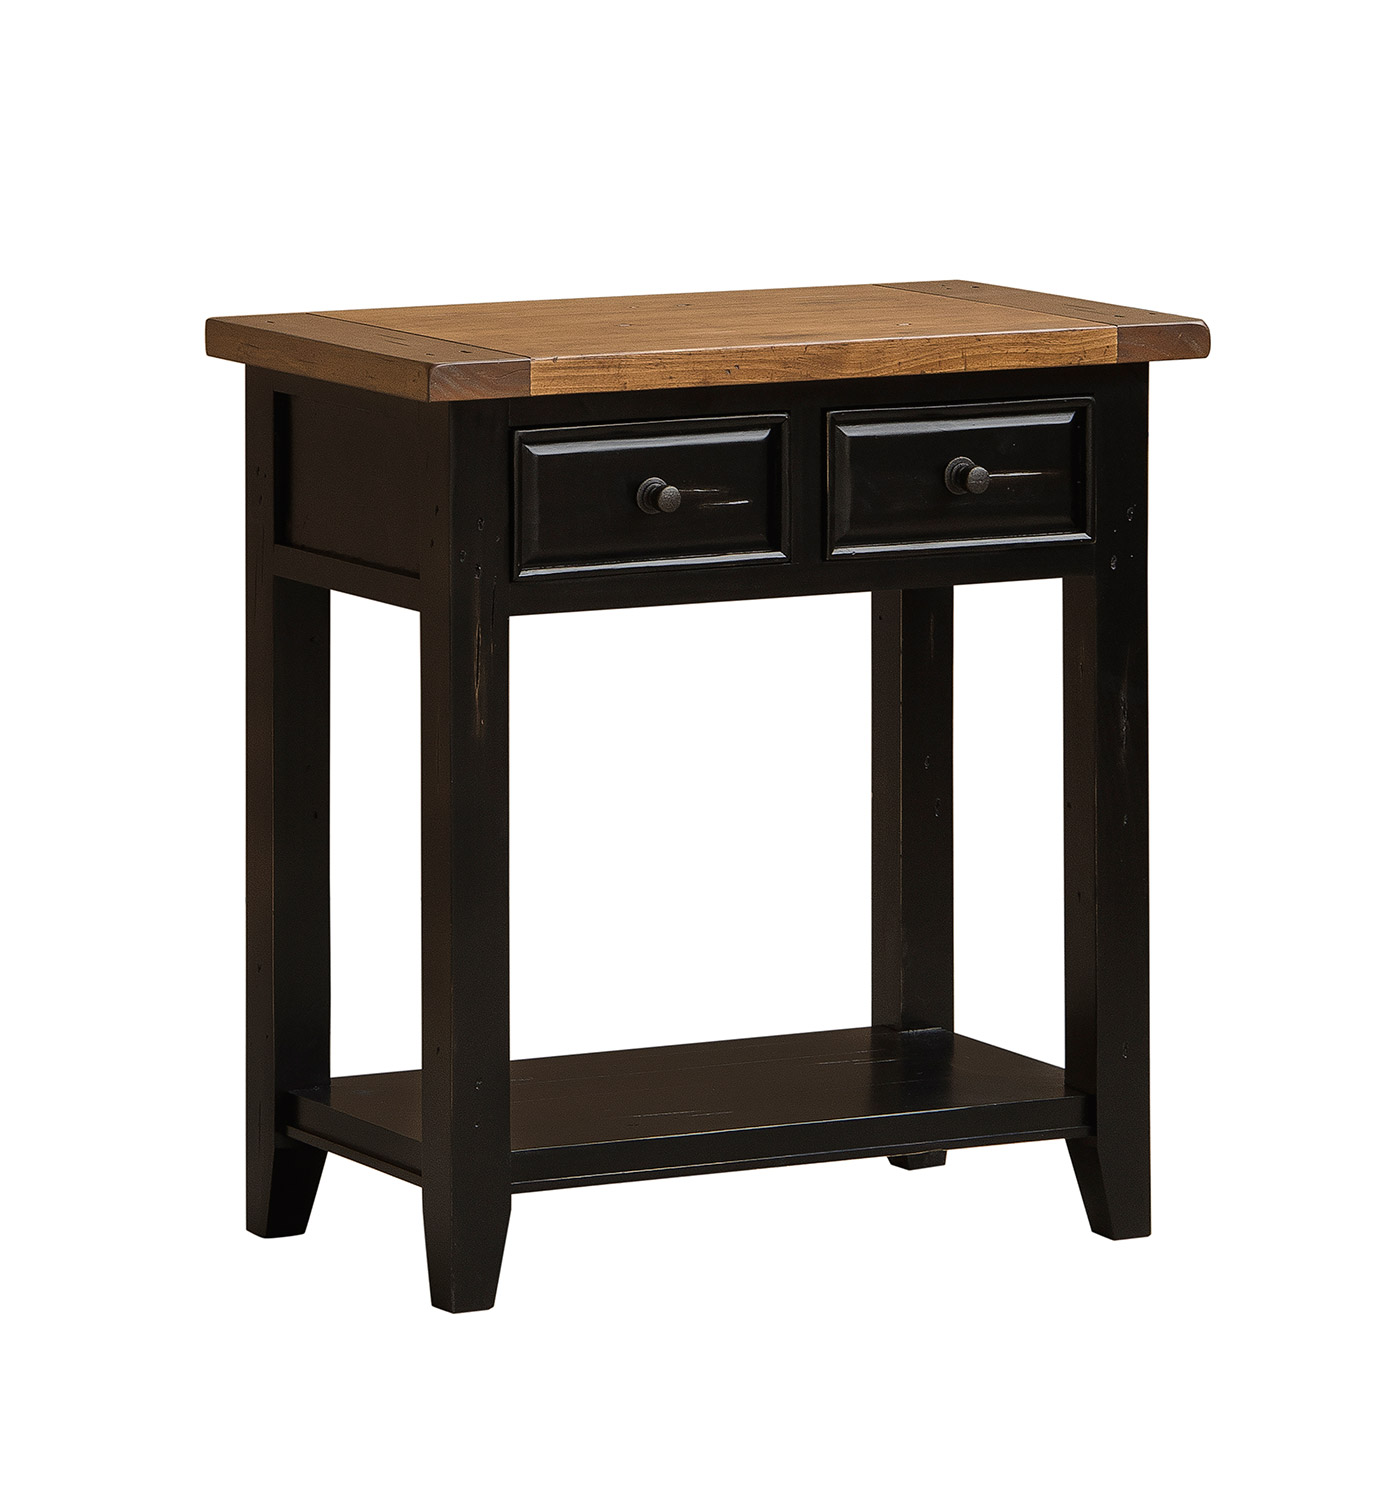 Hillsdale Tuscan Retreat 2 Drawer Hall Console Table - Black/Oxford